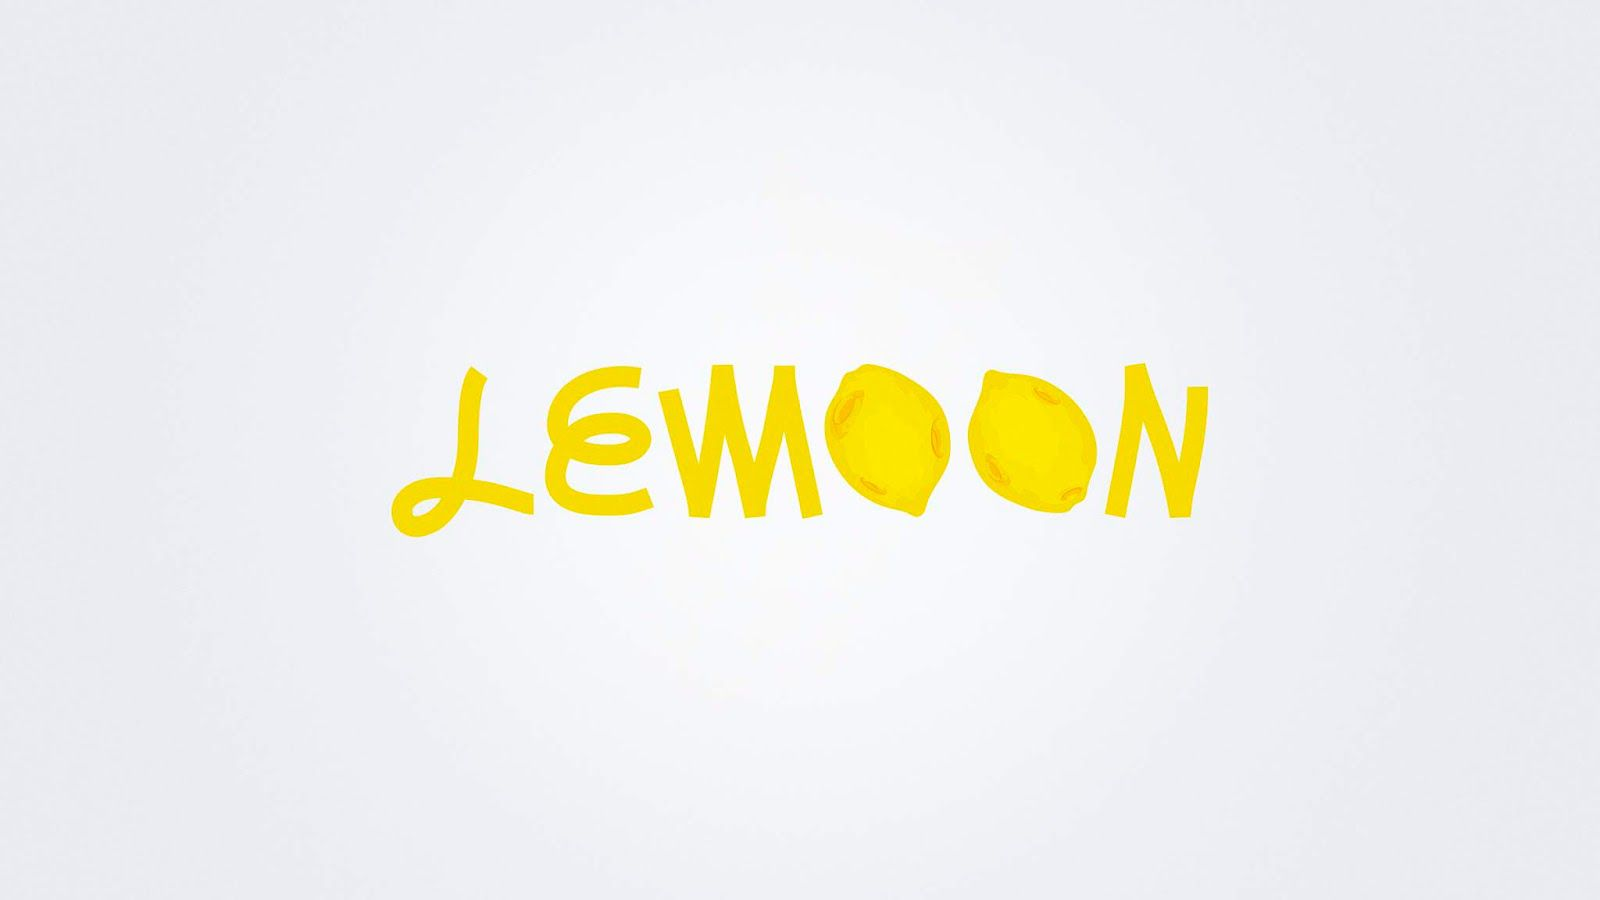 "Lemoon Food and Drink Co. : ""Lemoon"" (eau pétillante arômatisée au citron et à la menthe) I Design : Rafael Maia, Portugal (avril 2020)"